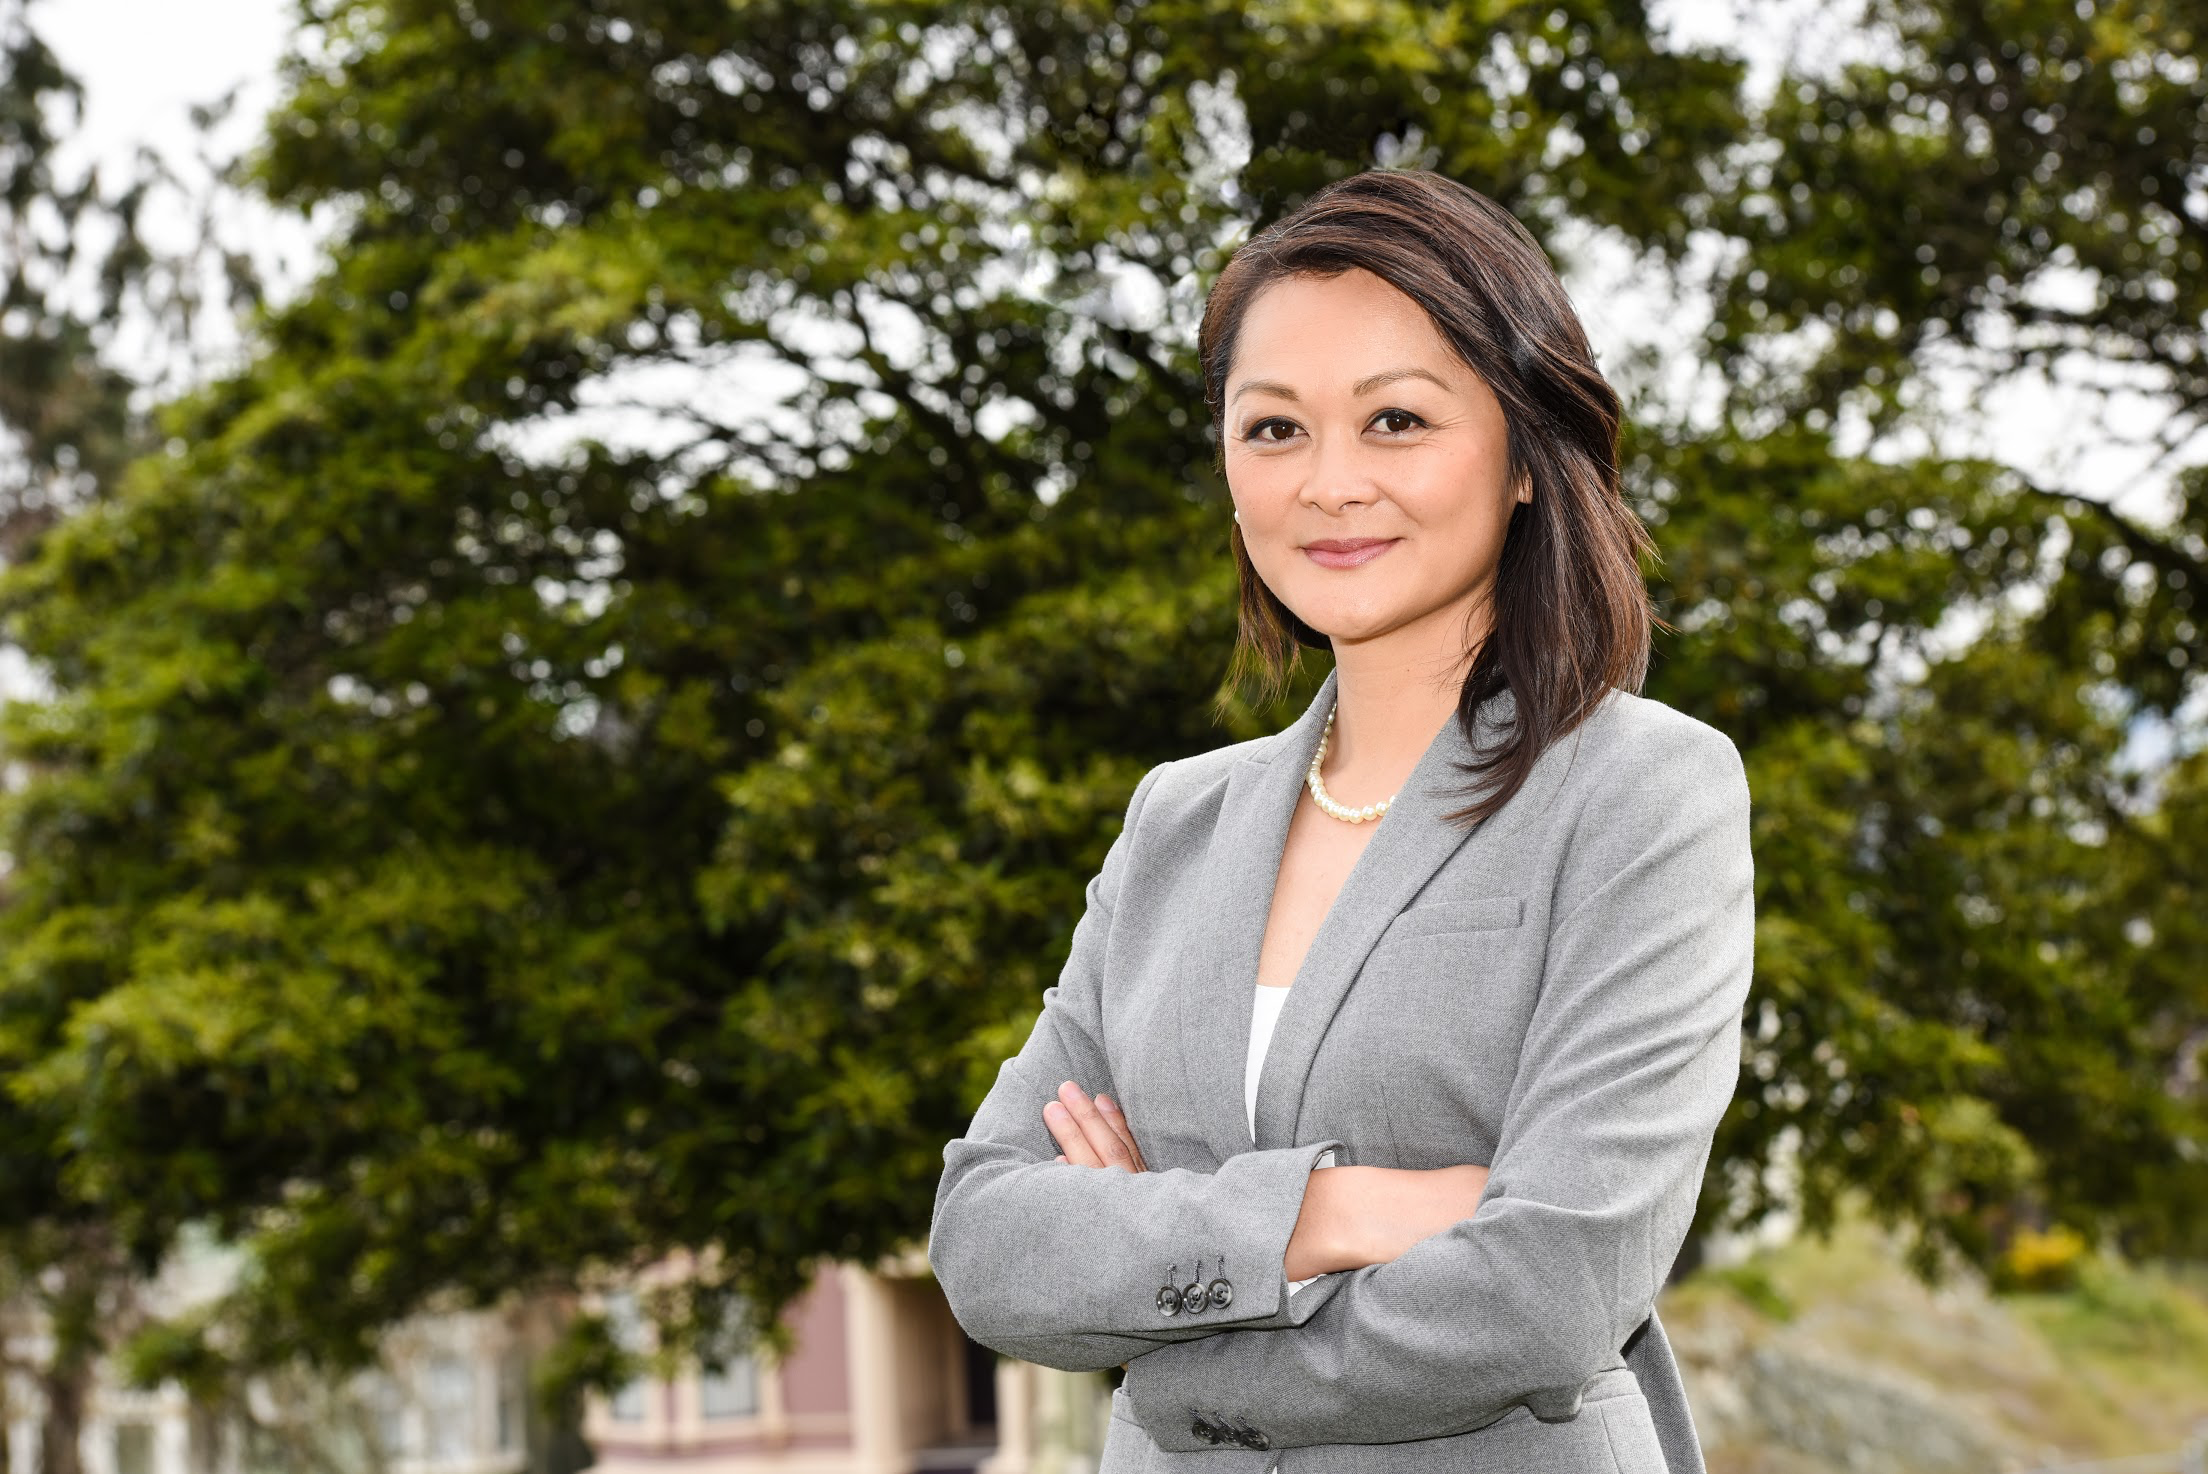 """""""He has a clear vision of how to improve our schools so that every student can receive an excellent education."""" - SAN FRANCISCO ASSESSOR-RECORDERCARMEN CHU"""